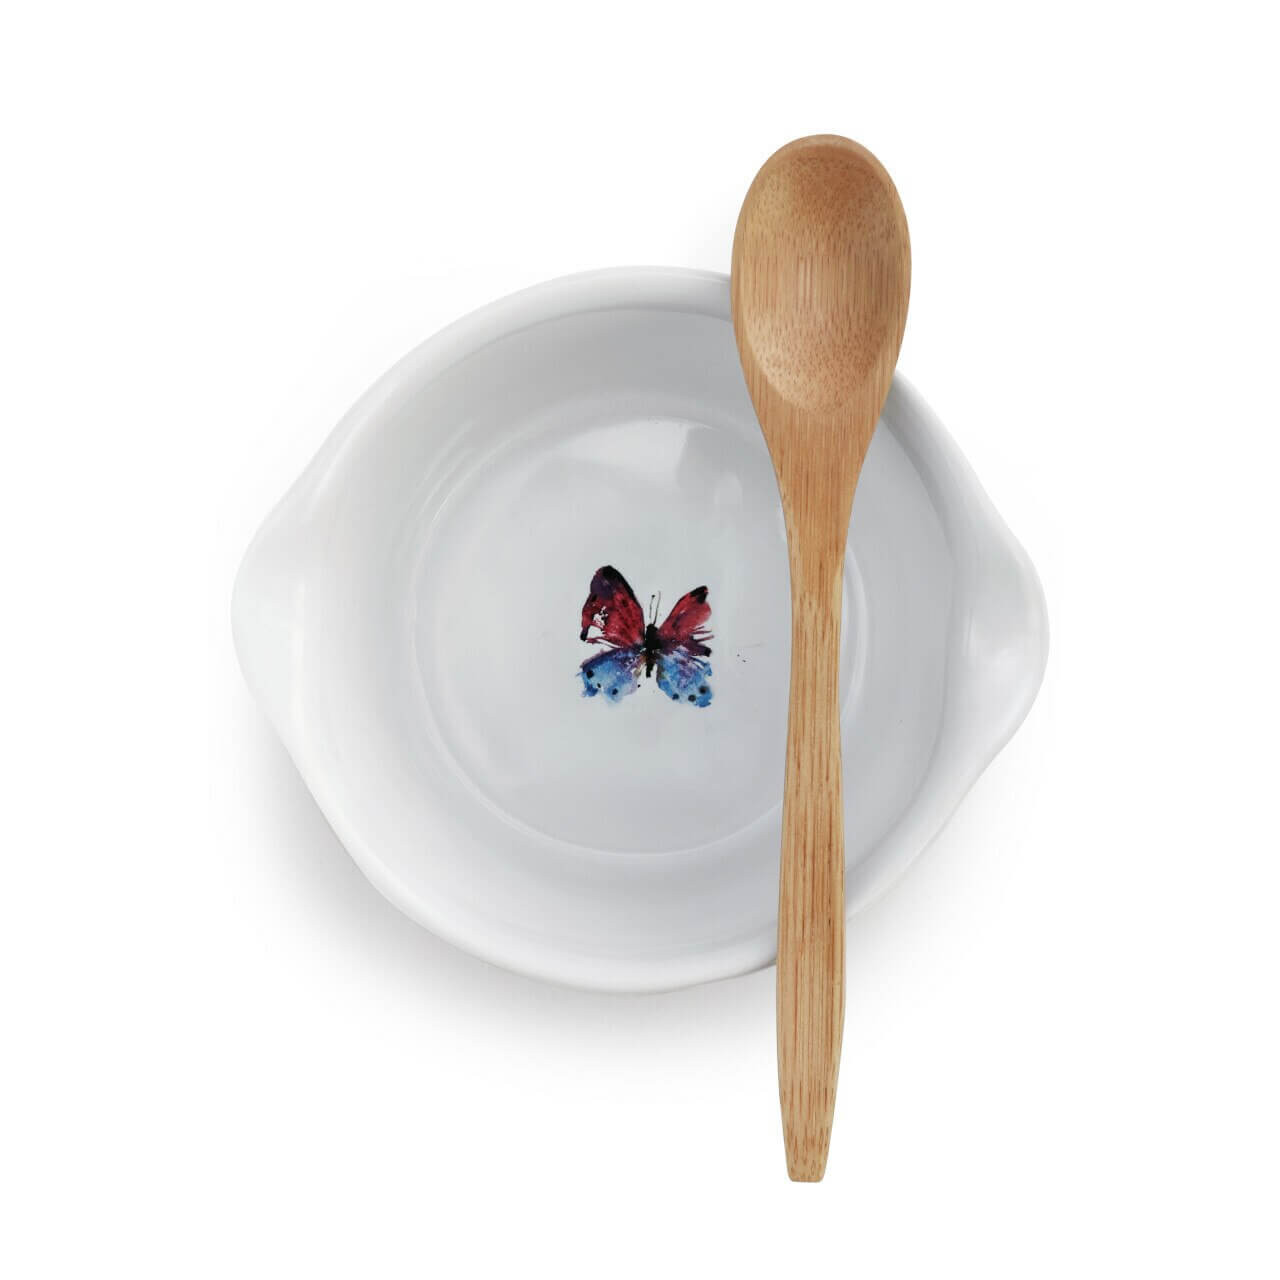 Flock of Butterflies Appetizer Bowl with Spoon